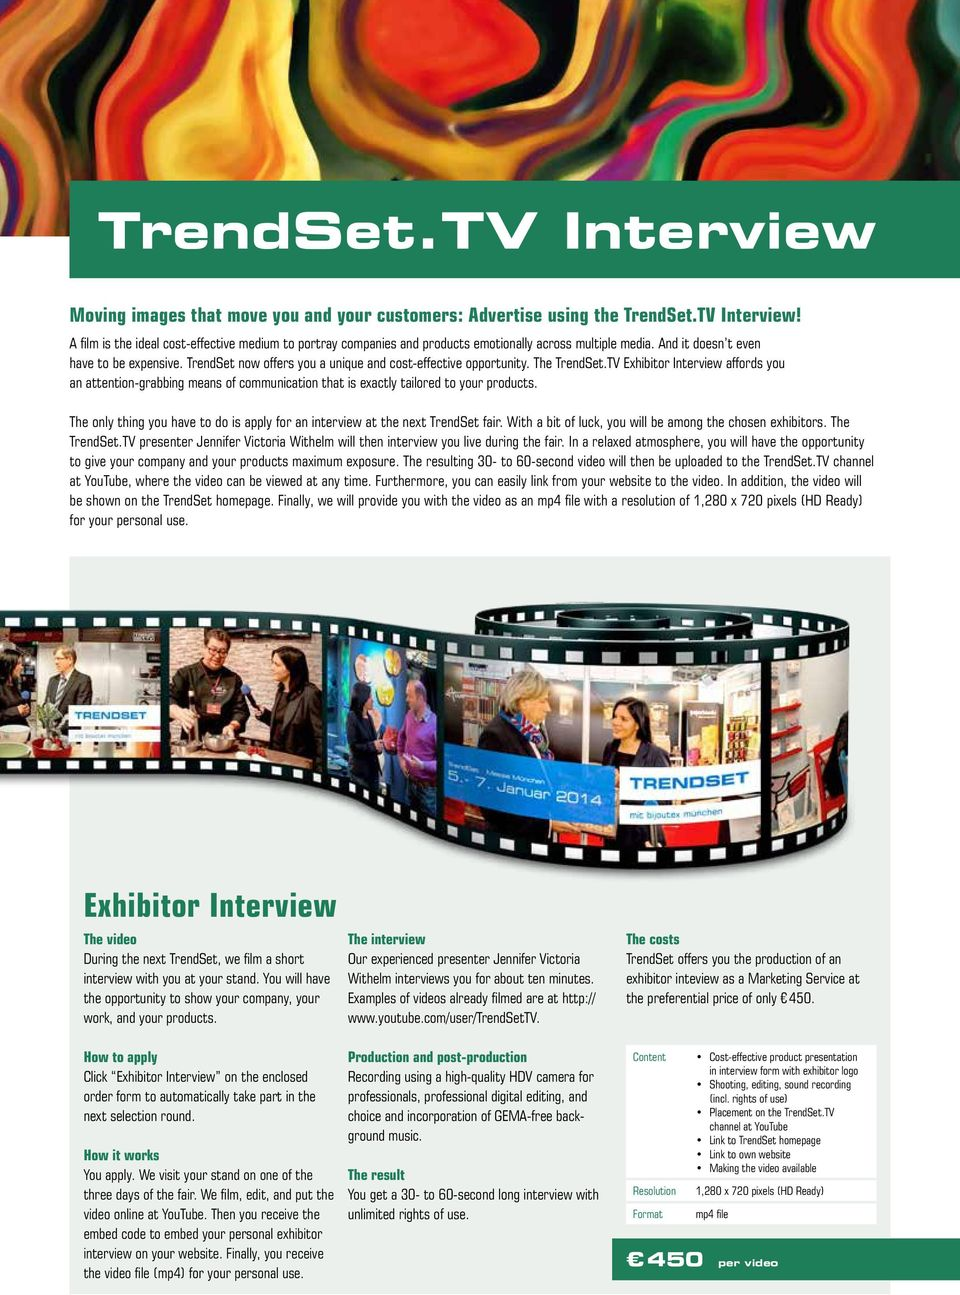 TV Exhibitor Interview affords you an attention-grabbing means of communication that is exactly tailored to your products.